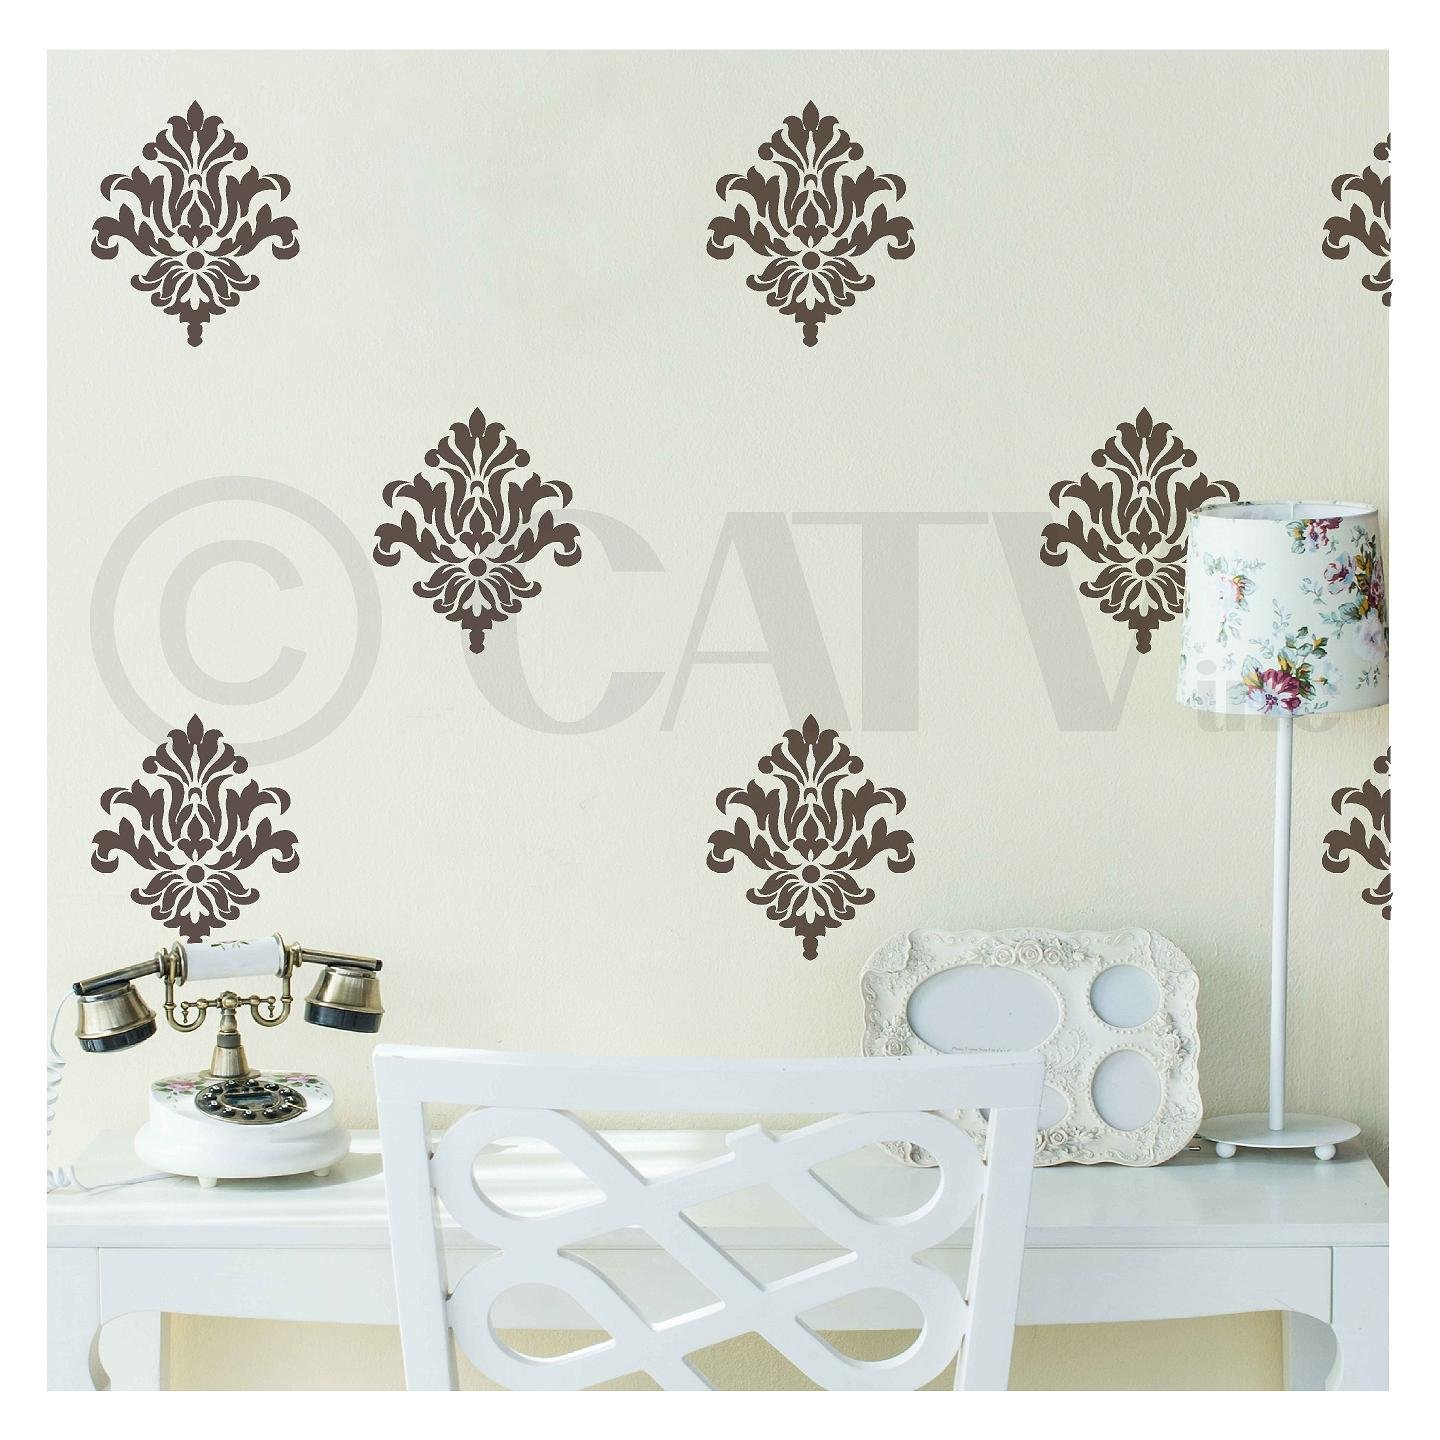 Damask set of 18 vinyl wall decal self adhesive wall pattern stickers (Metallic Bronze) by Wall Sayings Vinyl Lettering